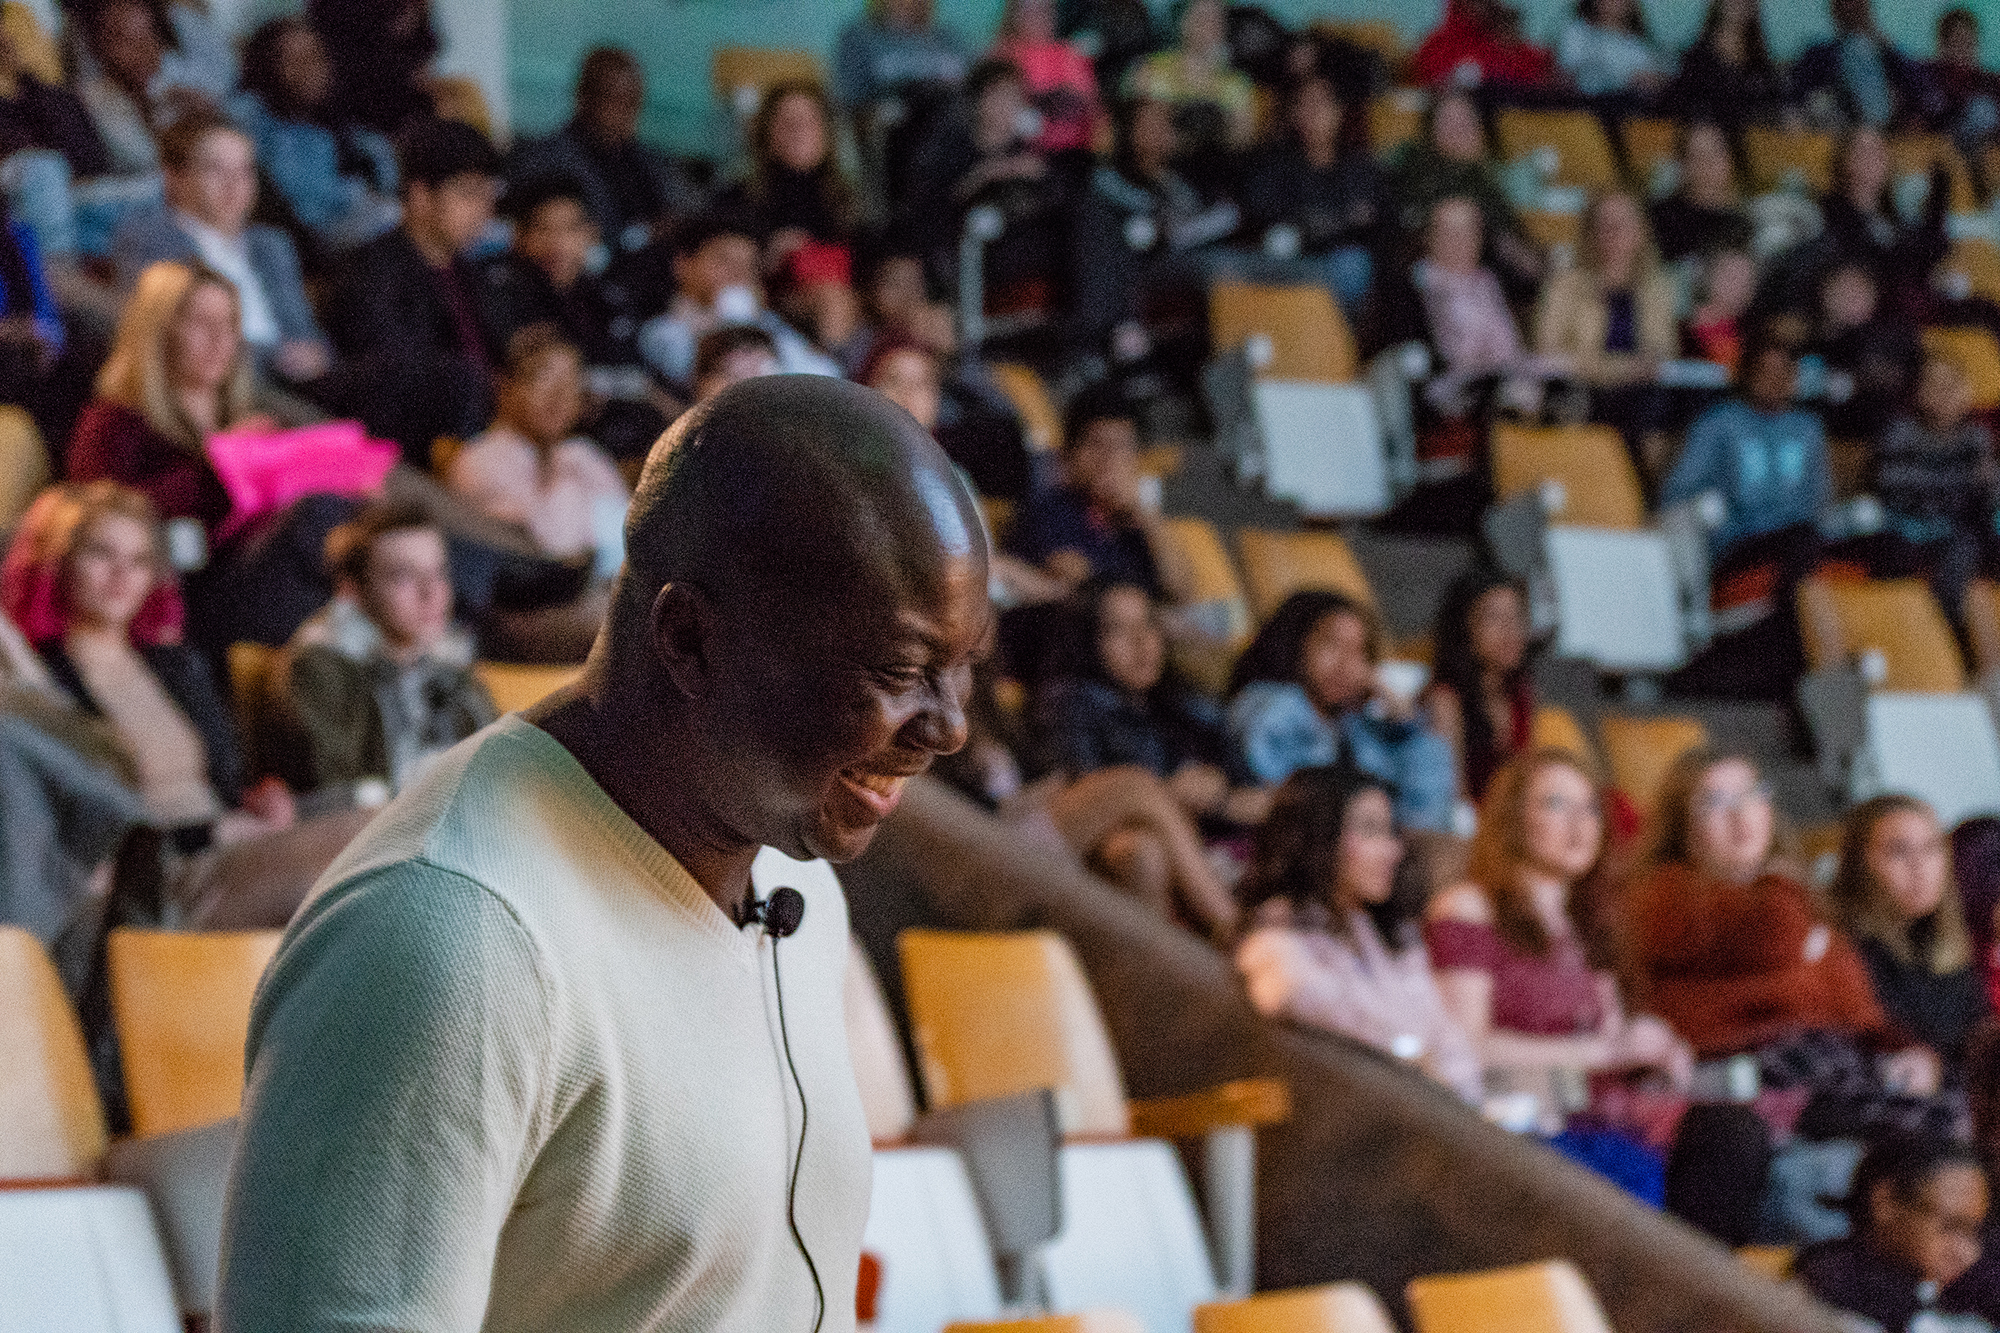 A cinematic experience for students - DRIFF partners with High SchoolsAll films are selected for a high school audience with a focus on cultural, relevant and educational content